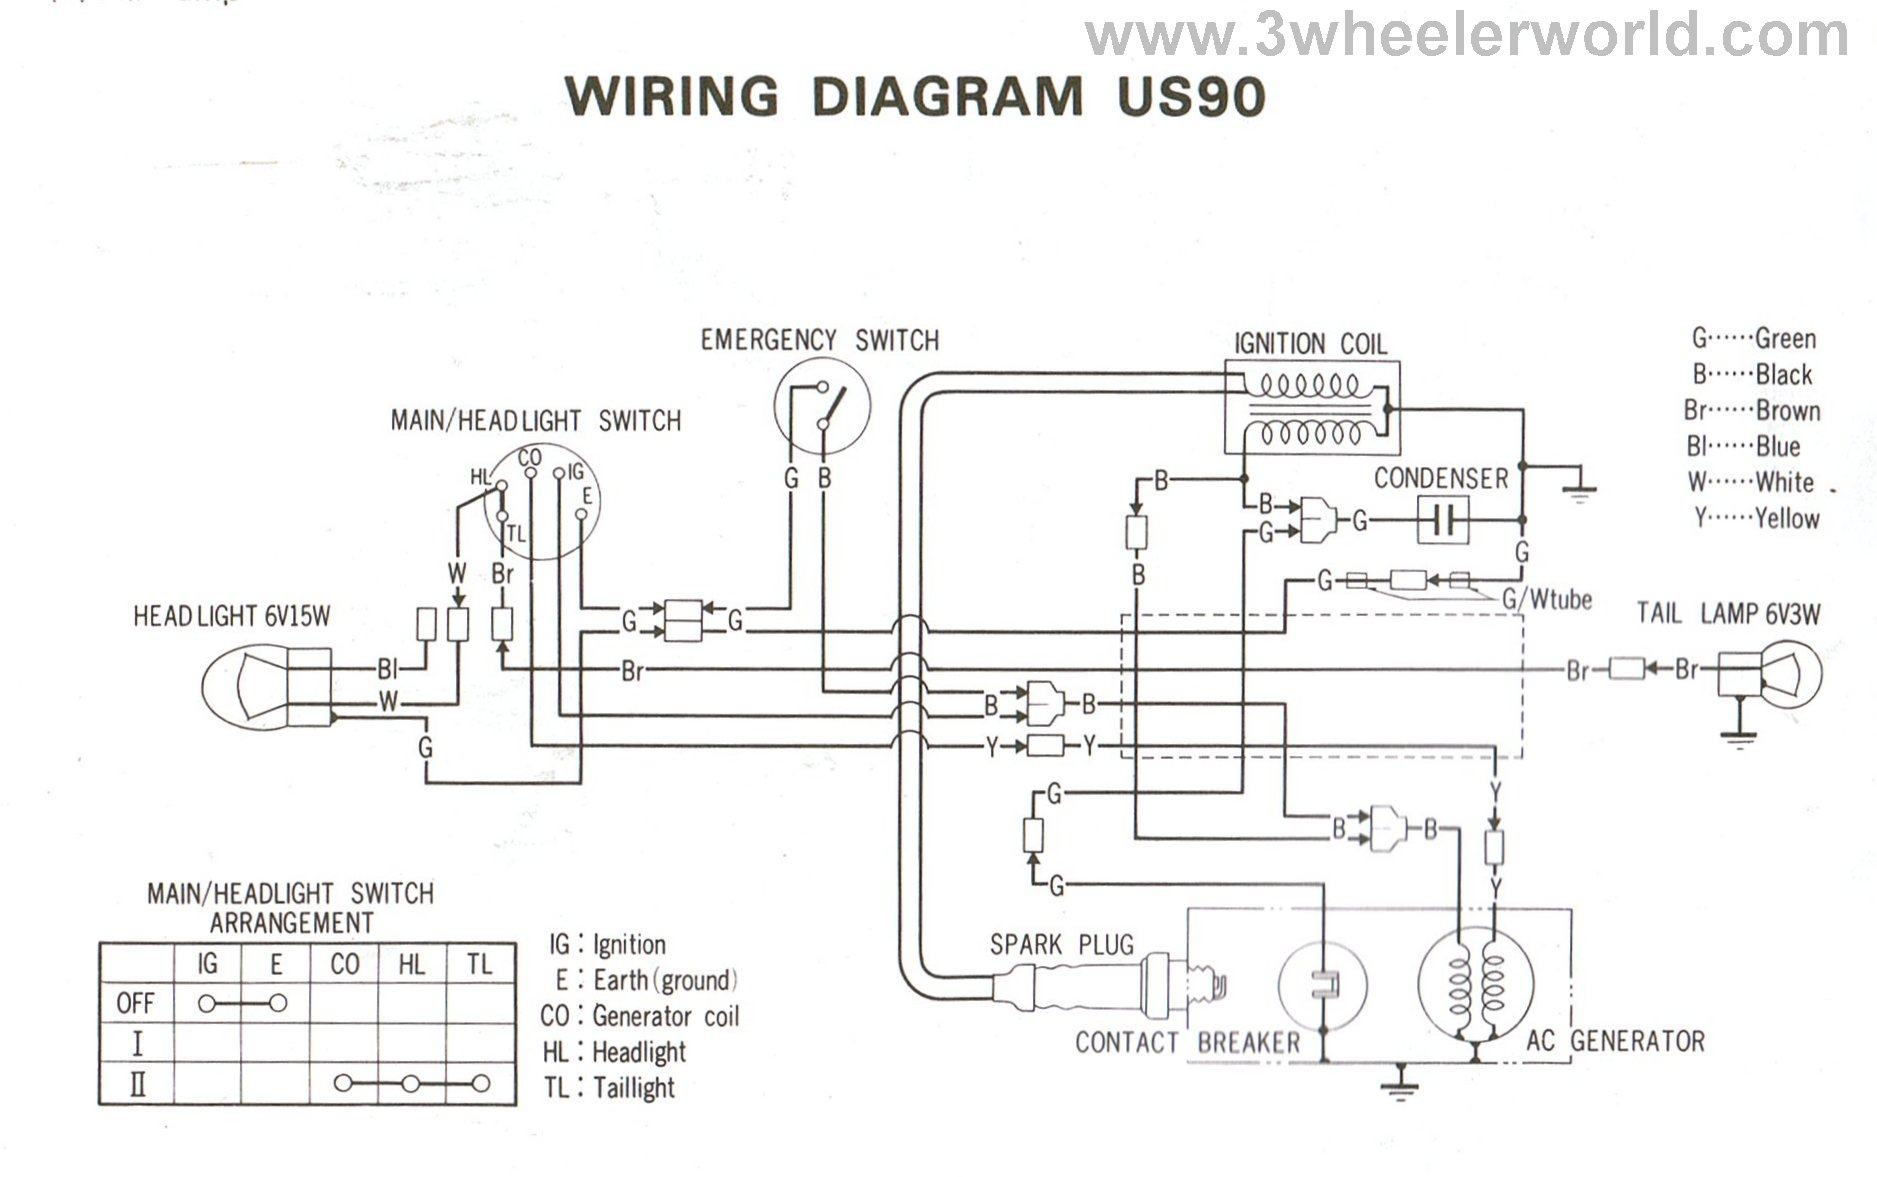 US90HM 3 wheeler world tech help honda wiring diagrams  at eliteediting.co